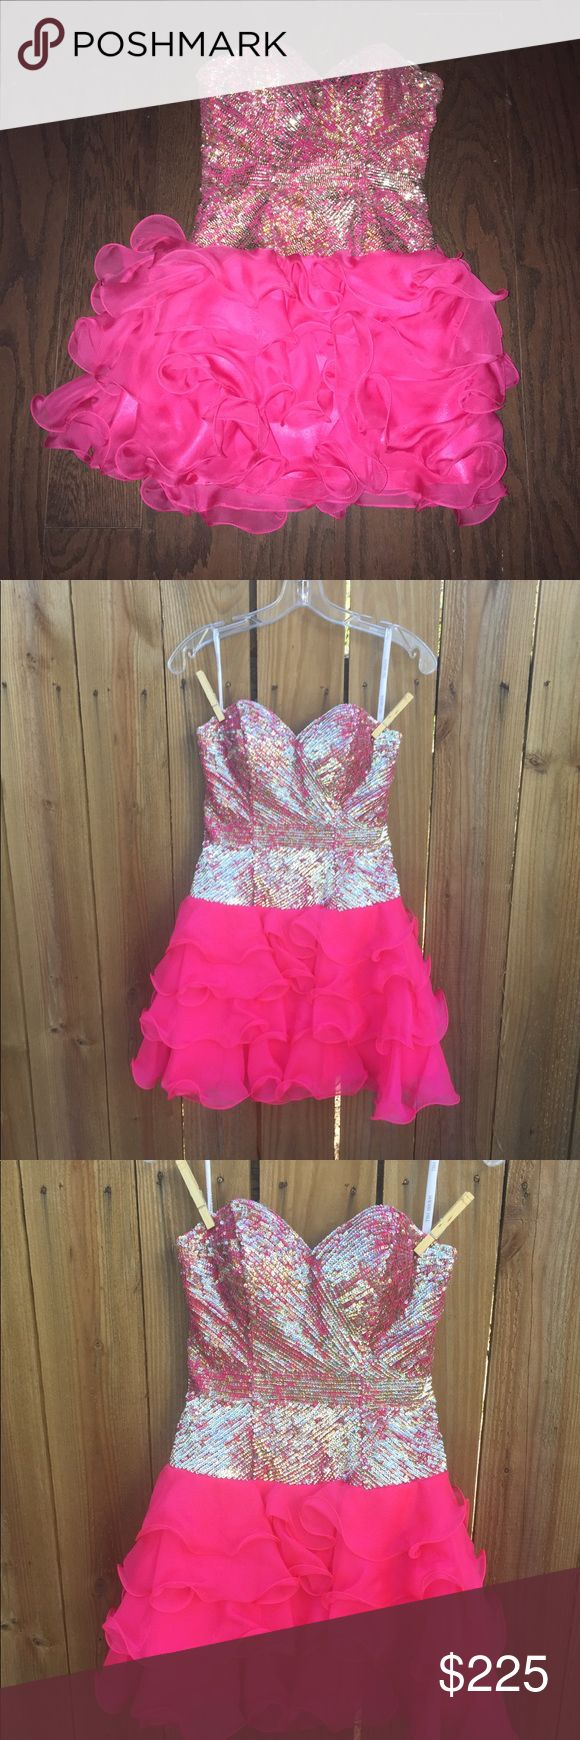 sherri hill prom Or Coctail Dress Size 2 Only worn once, this strapless beauty is in like new condition! It zips up under one arm. Has tulle under the skirt to create the flair in the skirt that complements the fitted bodice. Sherri Hill Dresses Strapless